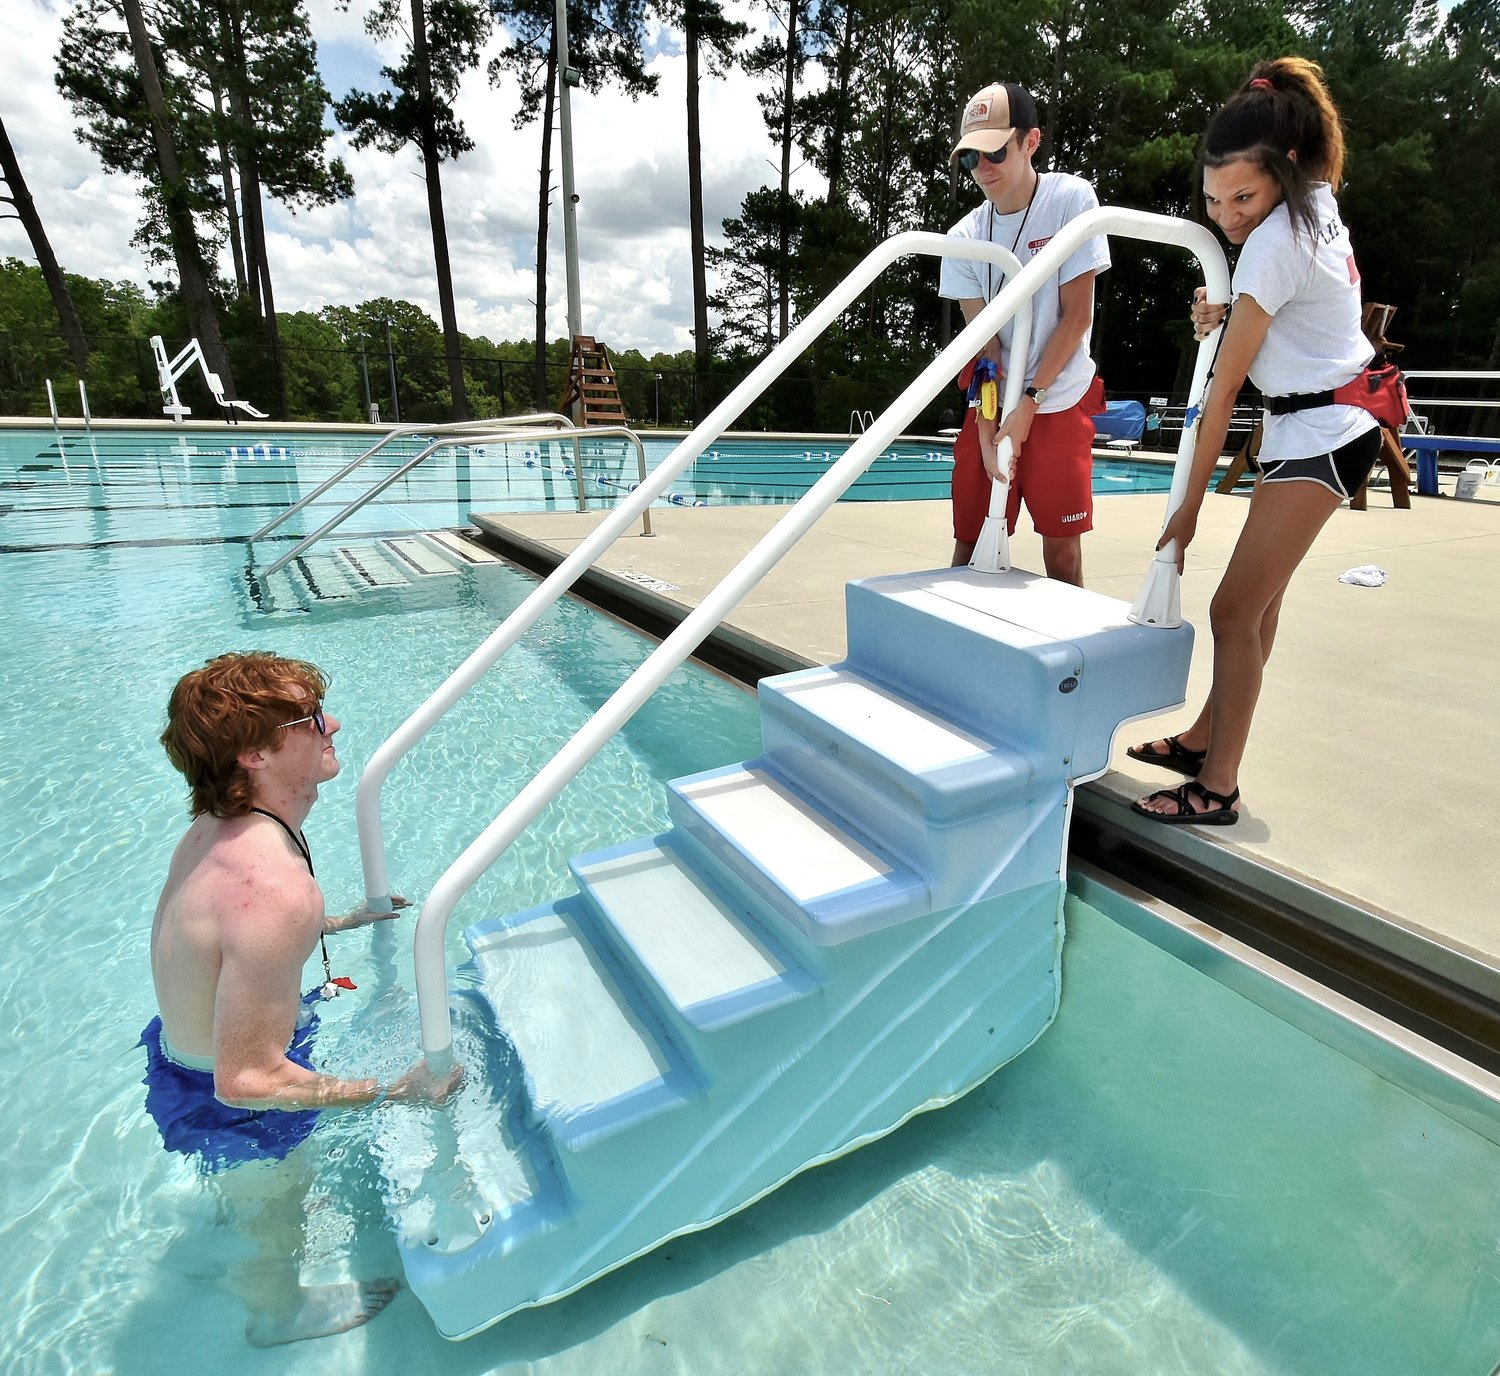 Lifeguards, from left, Cason Vogelsang, Thomas Peters, and Kaya Smith position the moveable steps in the Dellinger Park pool. The pool is scheduled to open June 11.